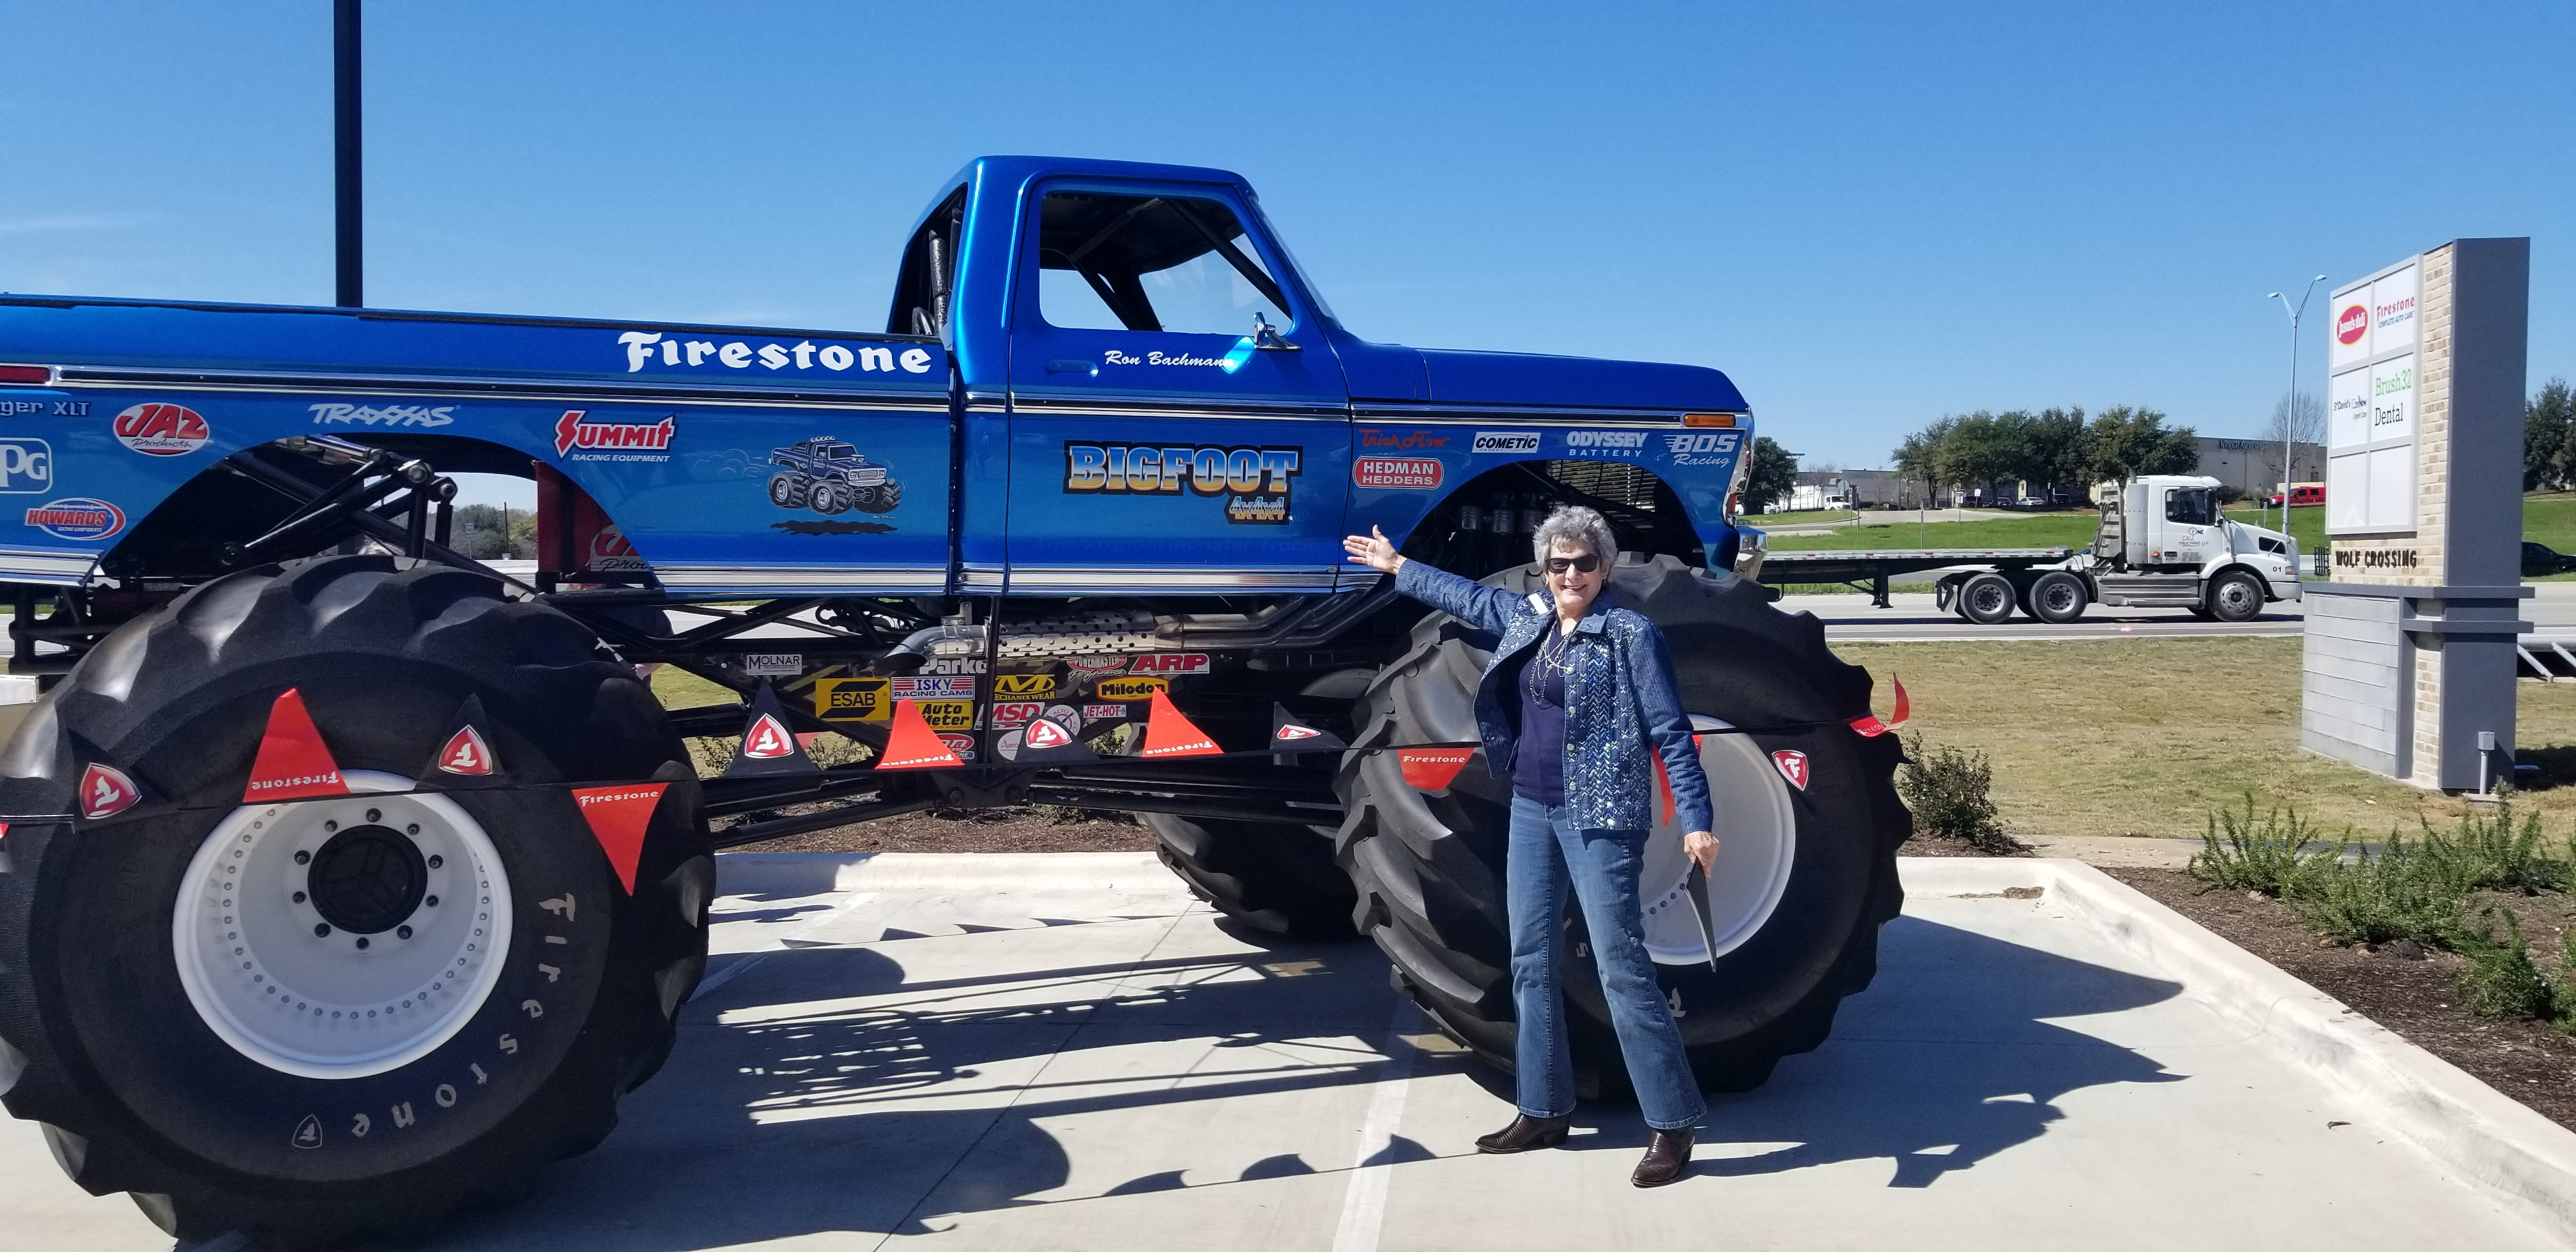 Commissioner Cook stands in front of the blue Firestone monster truck that is now retired.